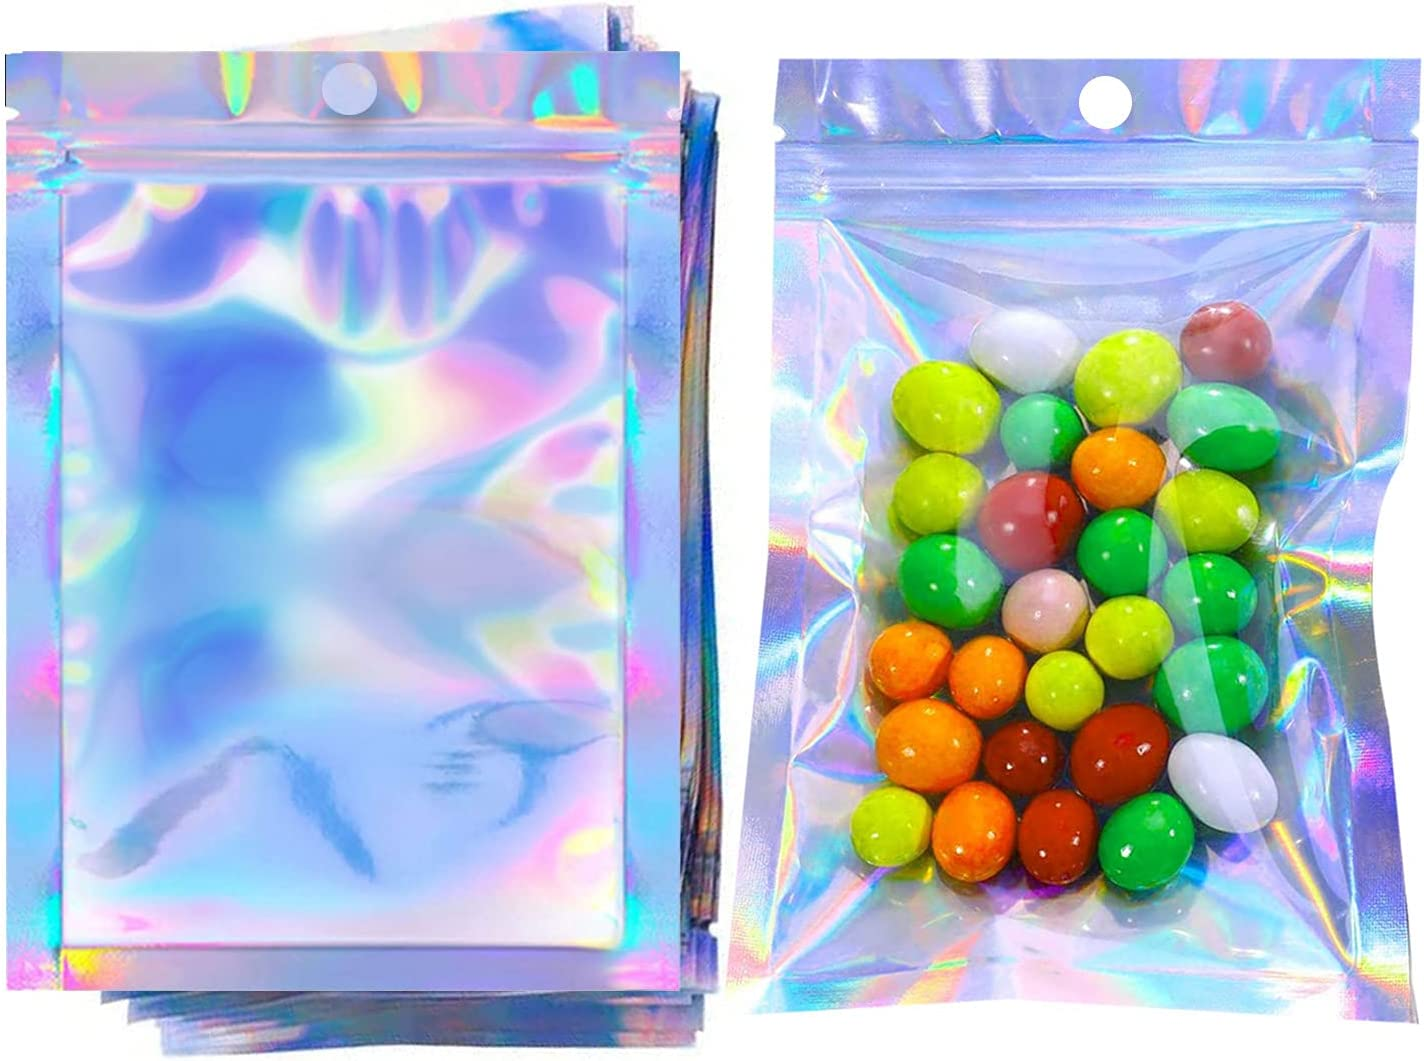 COQOFA 100Pcs 5x7 Inch Smell Proof mylar Bags Resealable Holographic Bags Flat Clear Foil zip lock Pouch Bags for Food Storage Gloss Eyelash Jewelry Electronics Storage